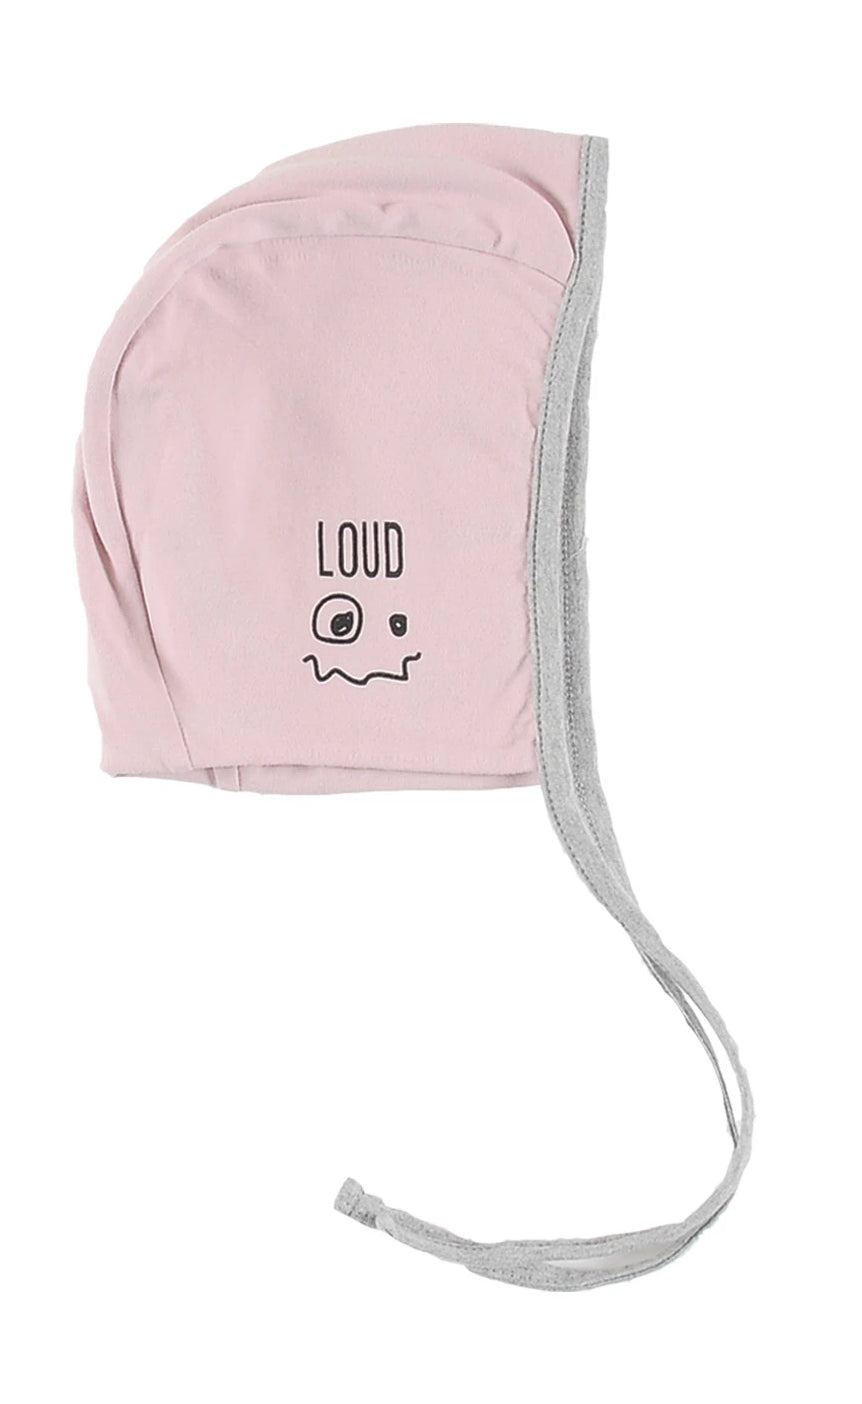 Loud Apparel NBH03 Bonnet